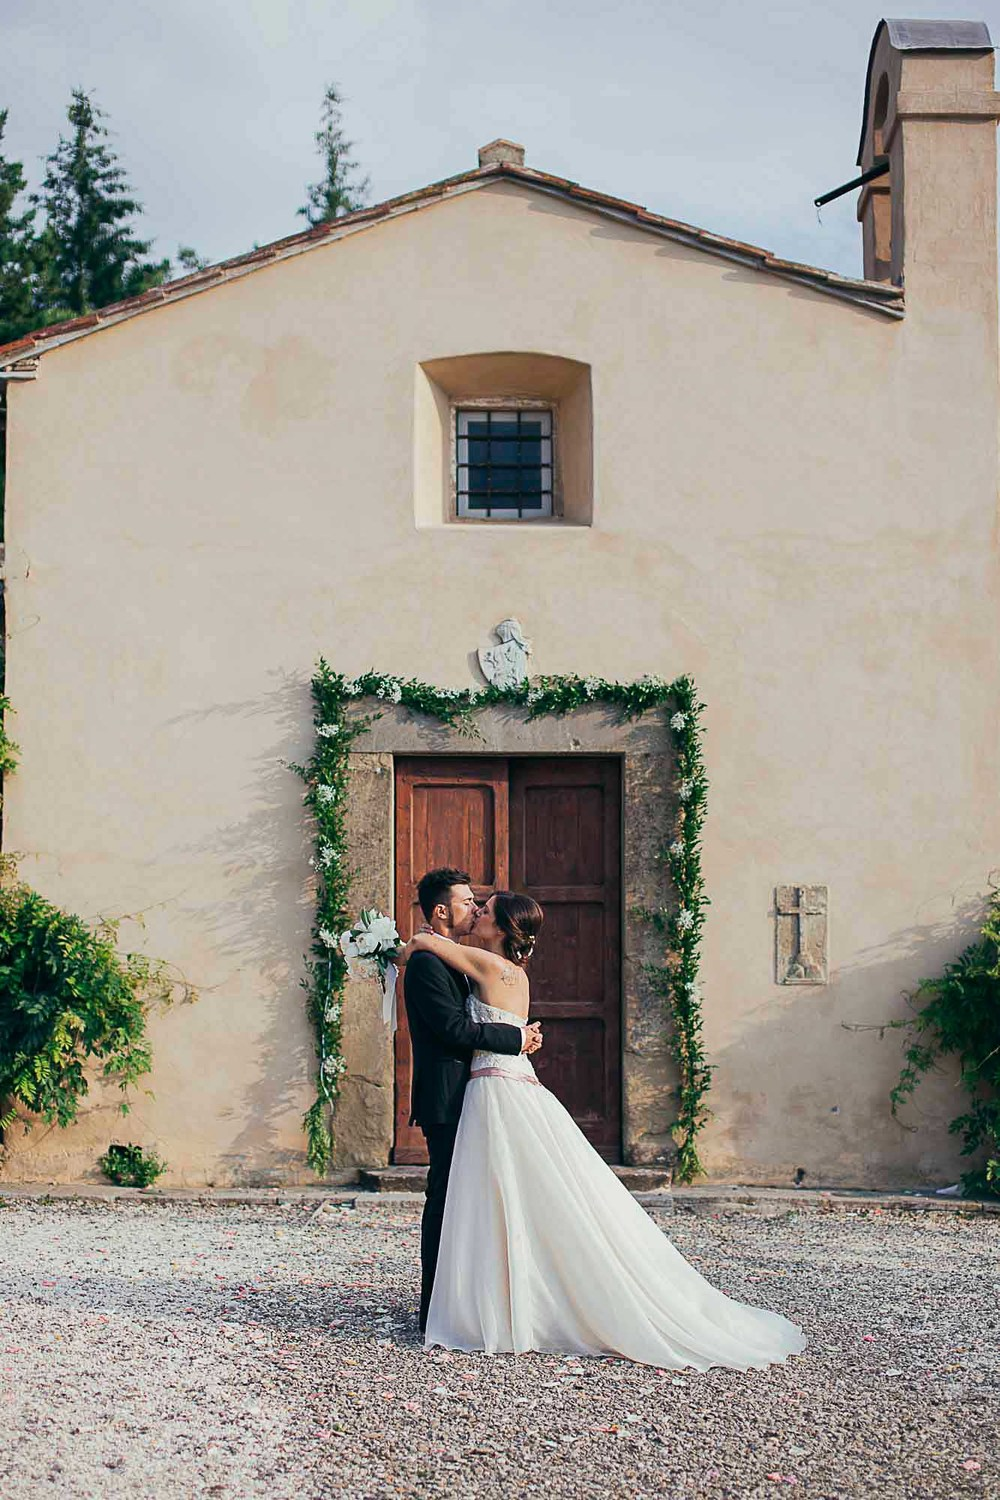 wedding tuscany-94.jpg